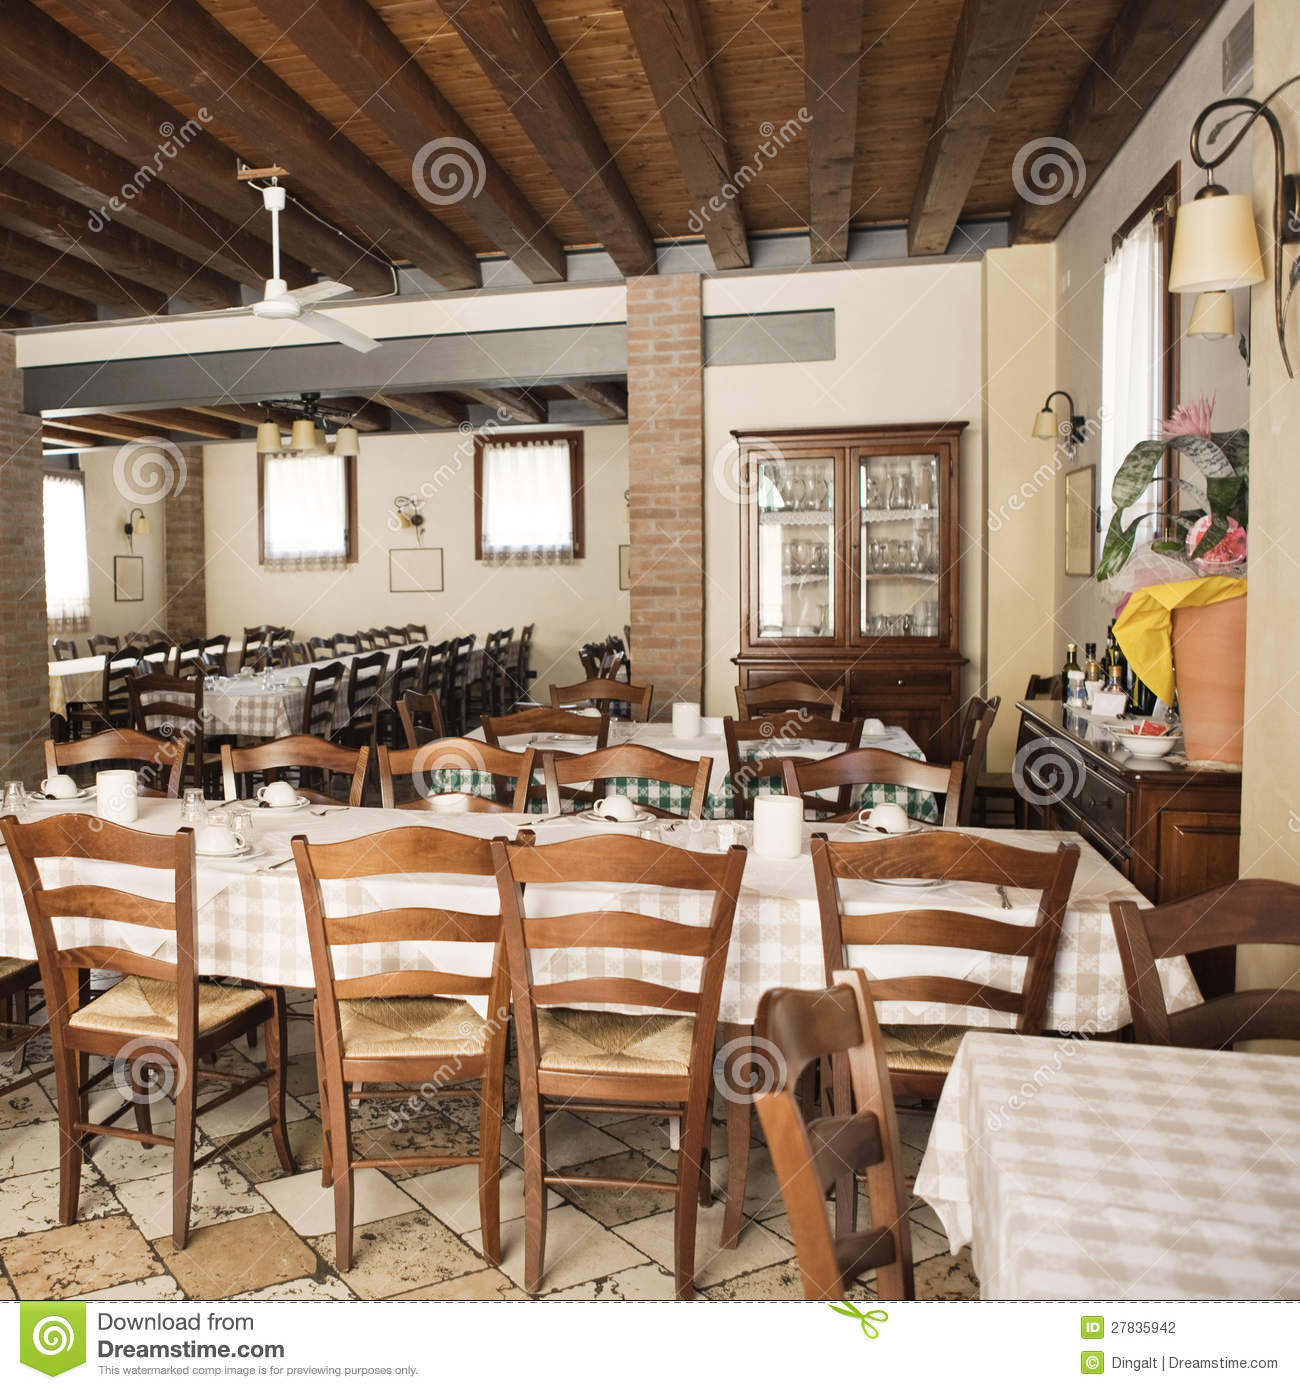 Cafe Interior Stock Photography